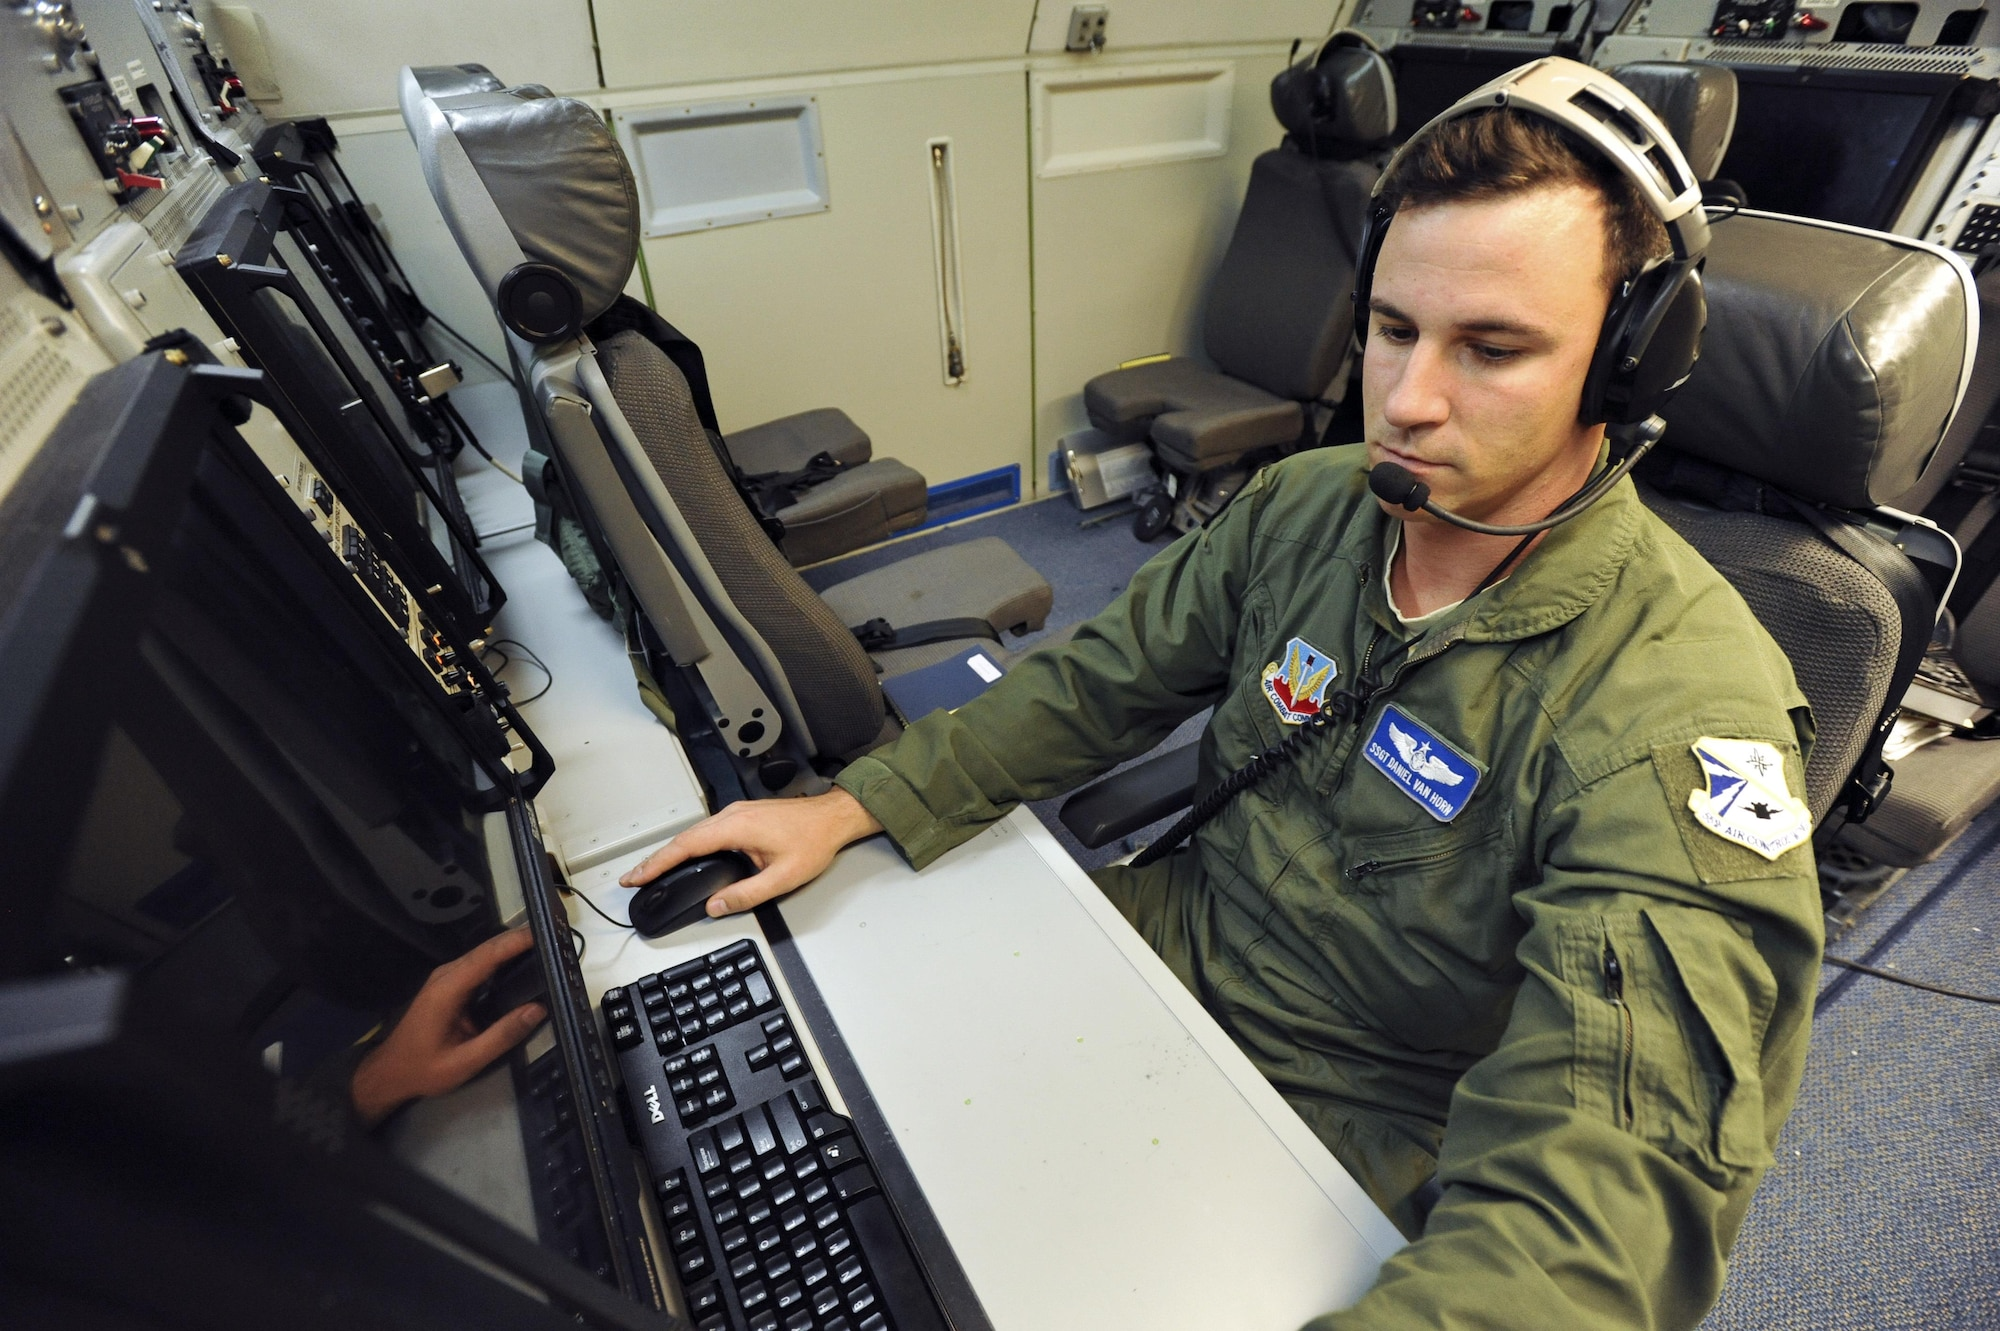 U.S. Air Force Staff Sgt. Daniel Van Horn, 966th Airborne Air Control Squadron, Oklahoma City, an airborne surveillance technician on an E-3G Airborne Warning and Control System aircraft, prepares for a mission above the Joint Pacific Alaska Range Complex during Exercise Northern Edge June 25, 2015. Thousands of service members from all the branch services including active duty, Reserve and National Guard units participated. (U.S. Air Force photo by Staff Sgt. William Banton/Released)